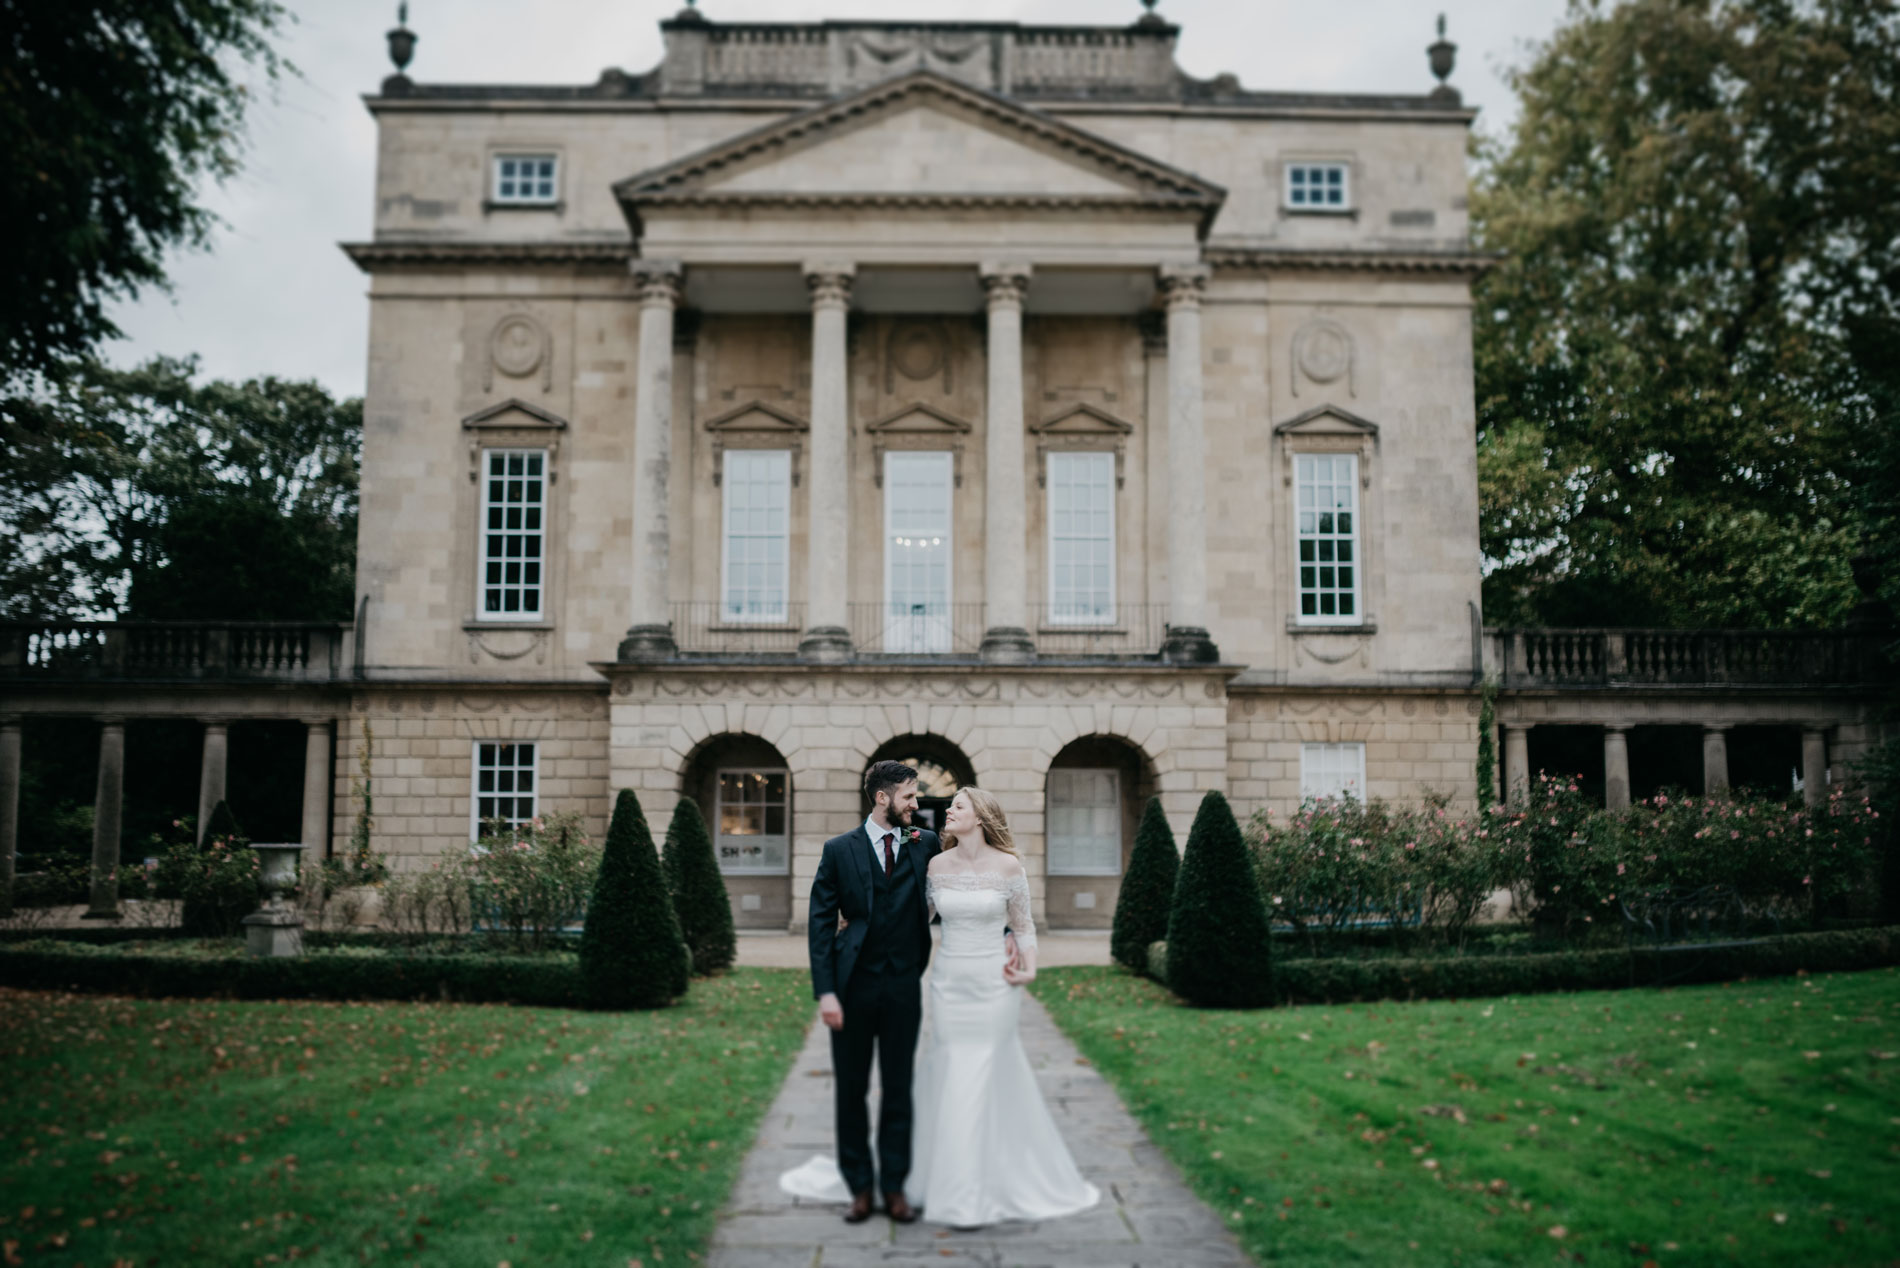 Amy and John getting married at The Holburne Museum in Bath